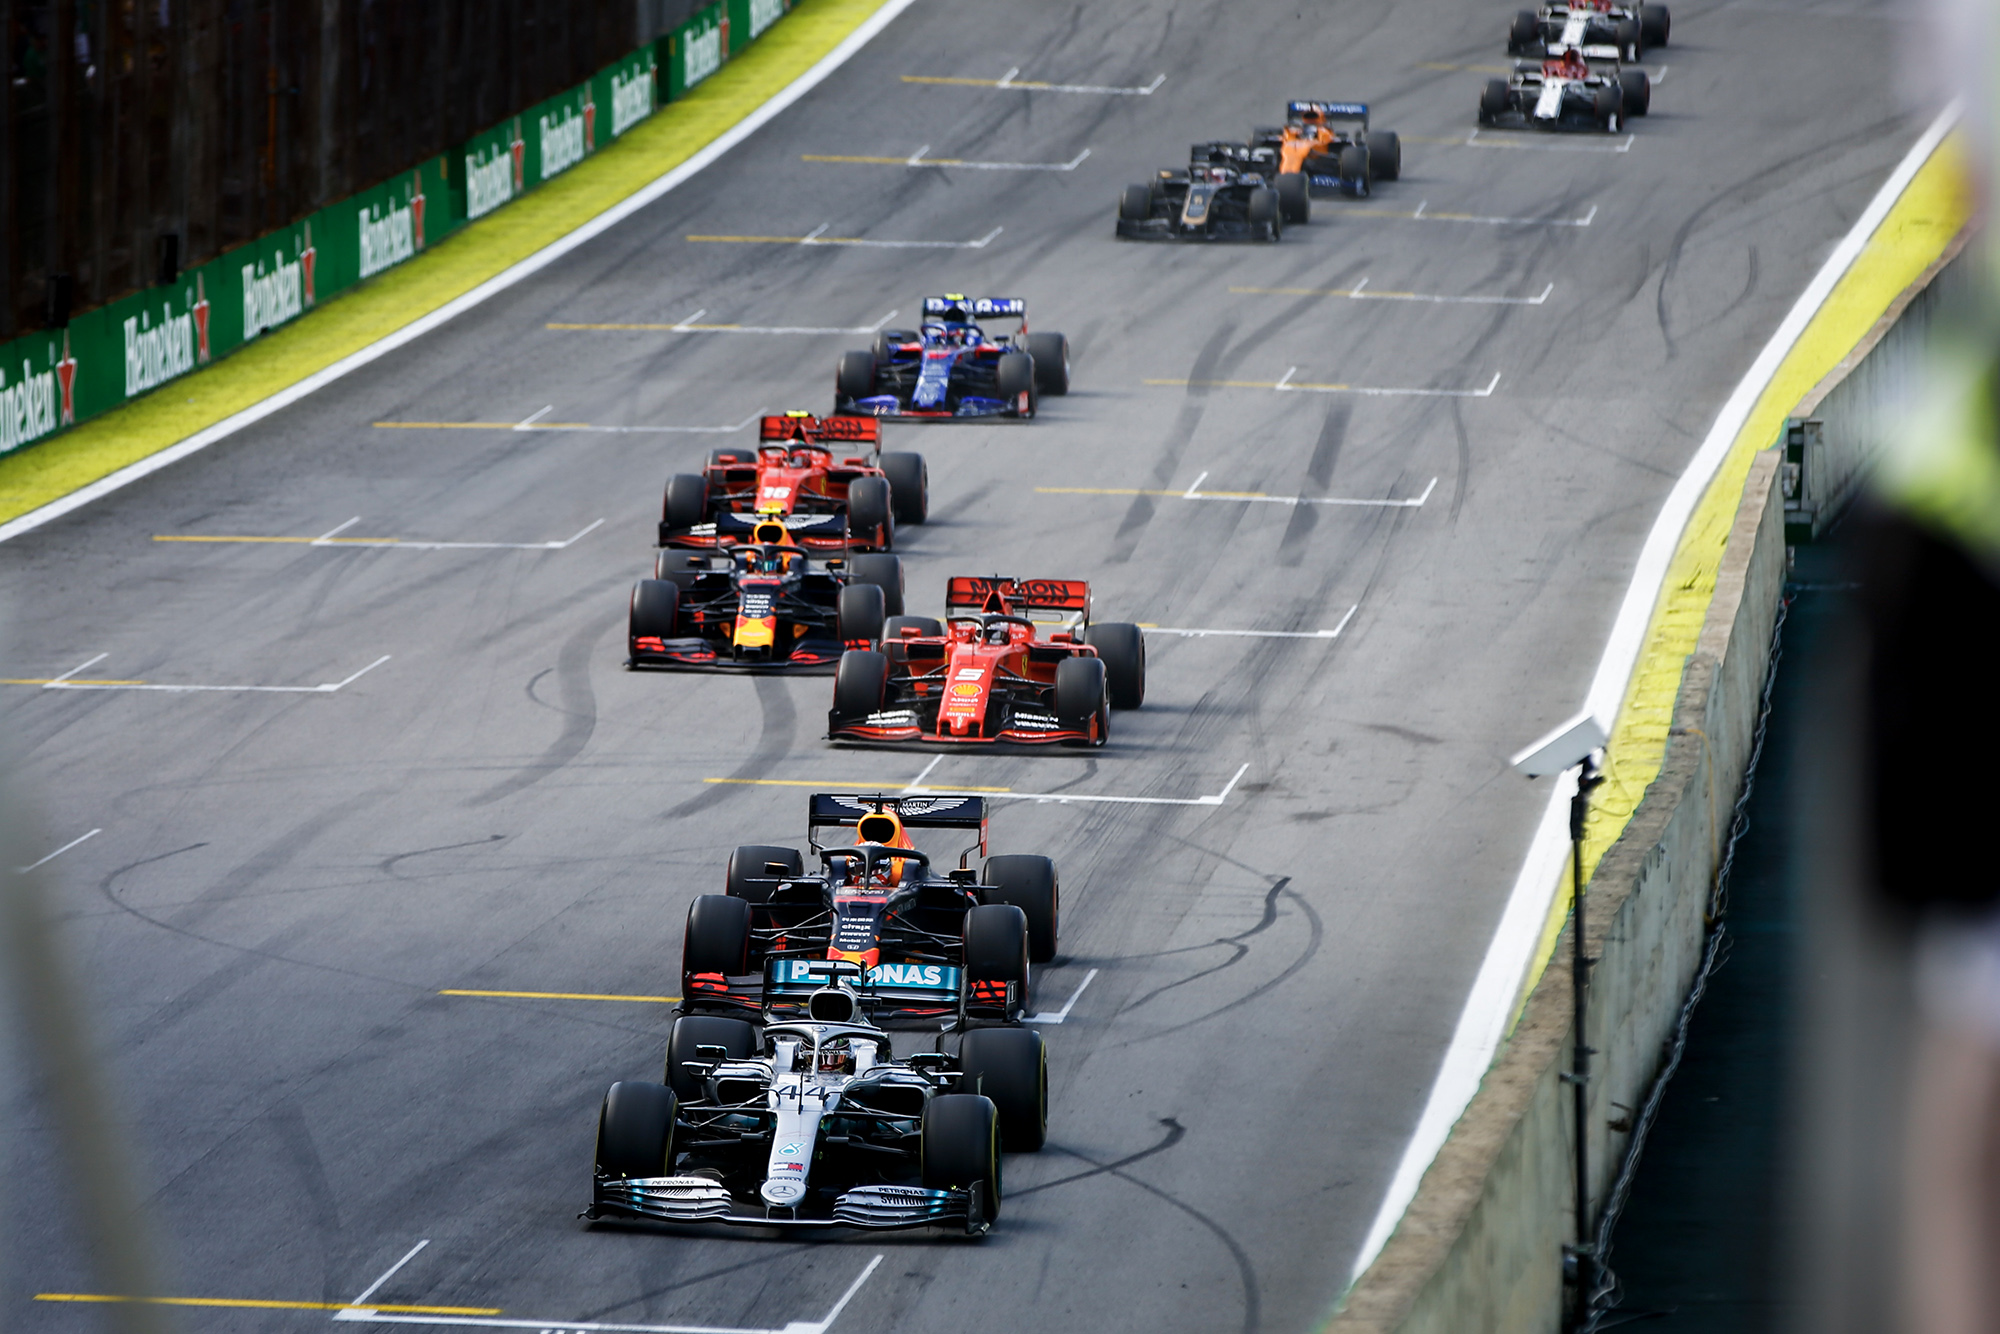 Hamilton ahead during the first restart after the safety car at the 2019 Brazilian Grand Prix